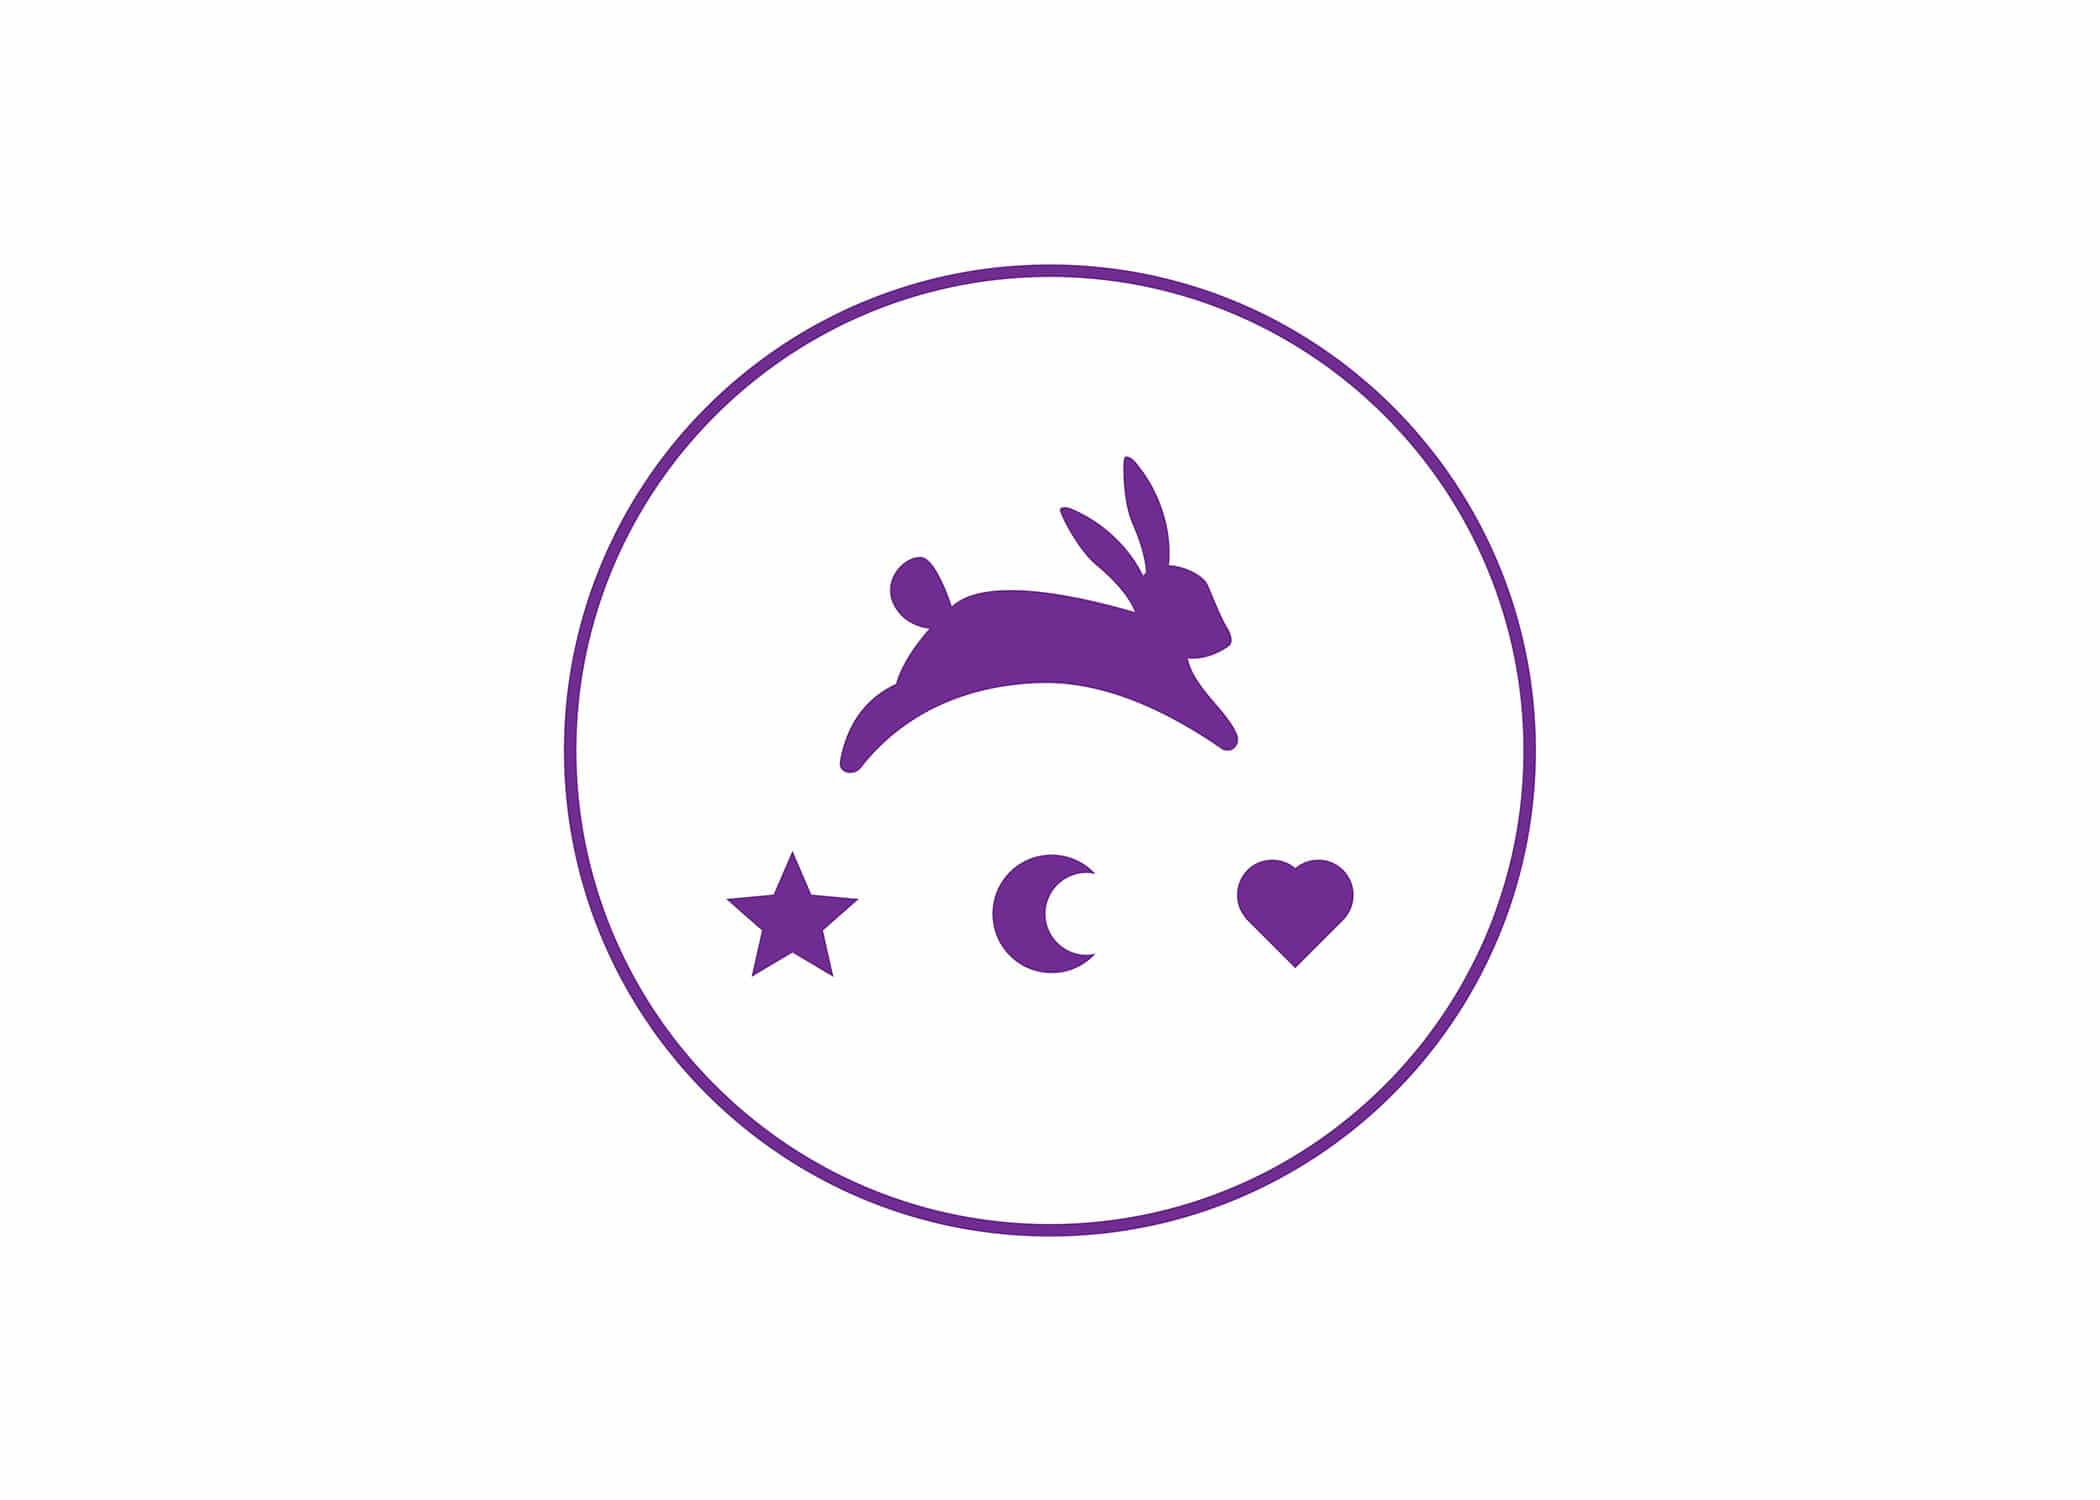 Funny Bunny logo icon with hopping bunny icon, a mini star, moon, and heart in purple within a thin circle.